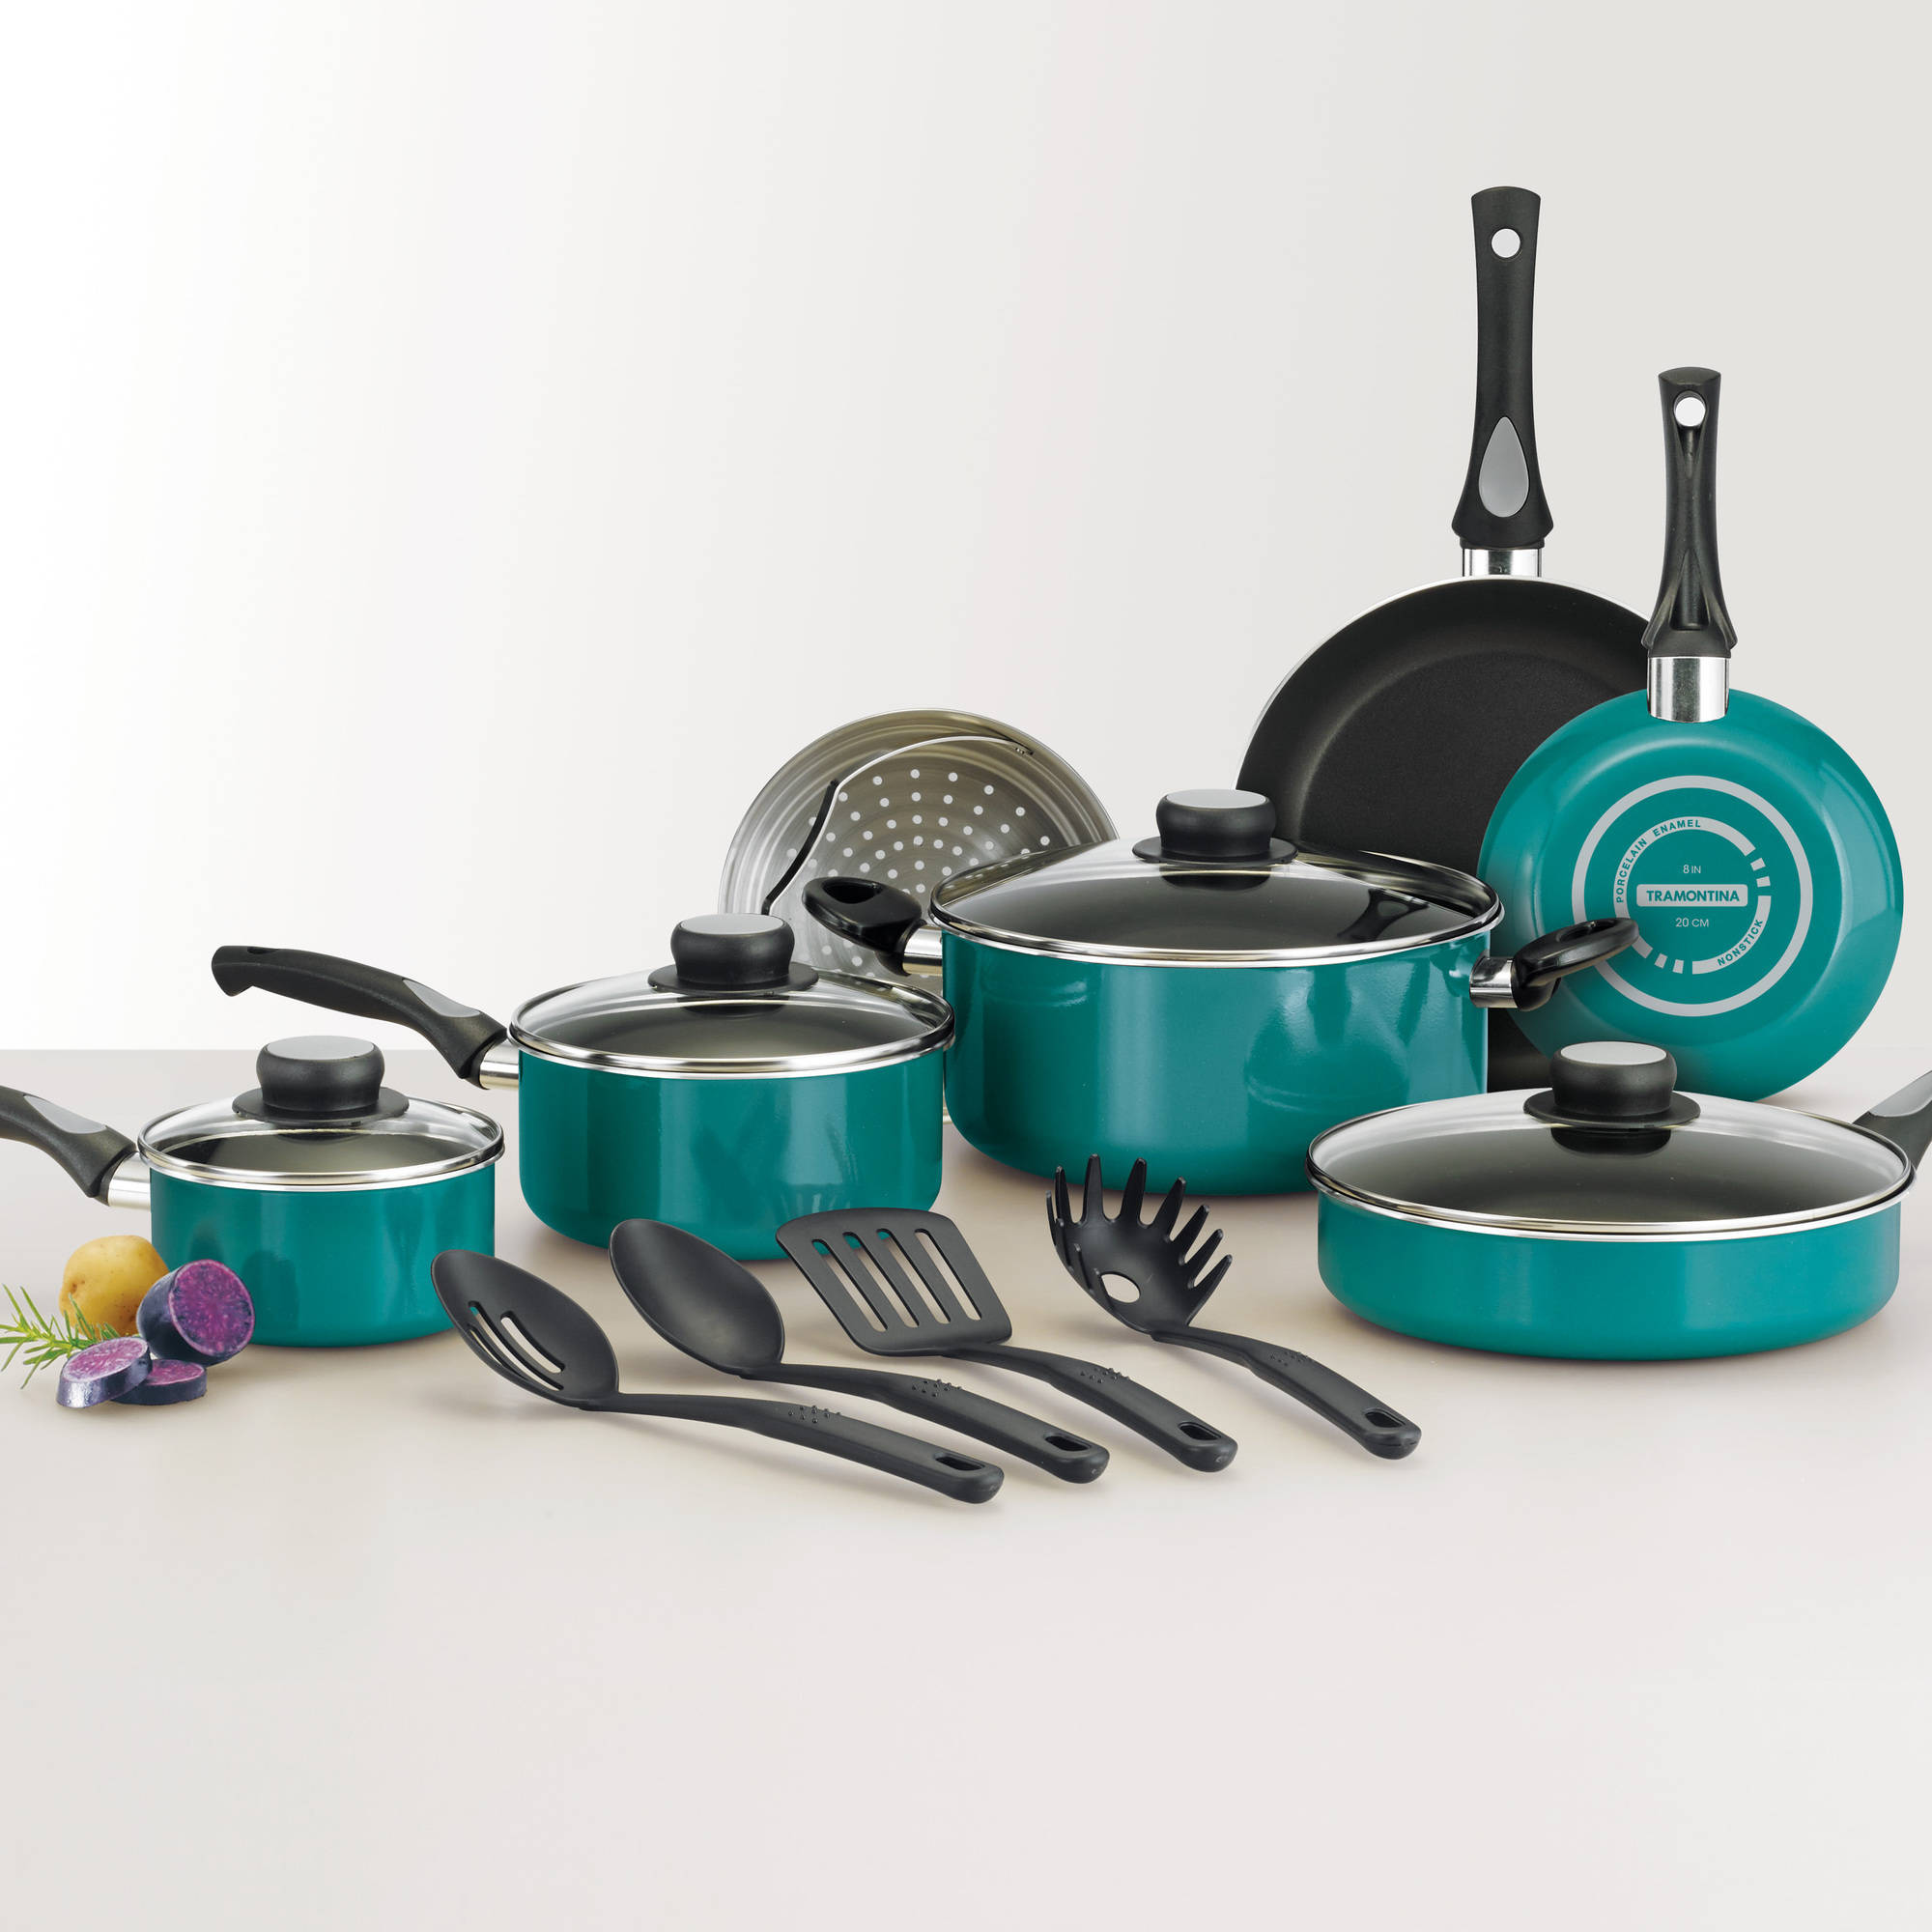 Tramontina 15-Piece Select Non-Stick Cookware Set, Teal